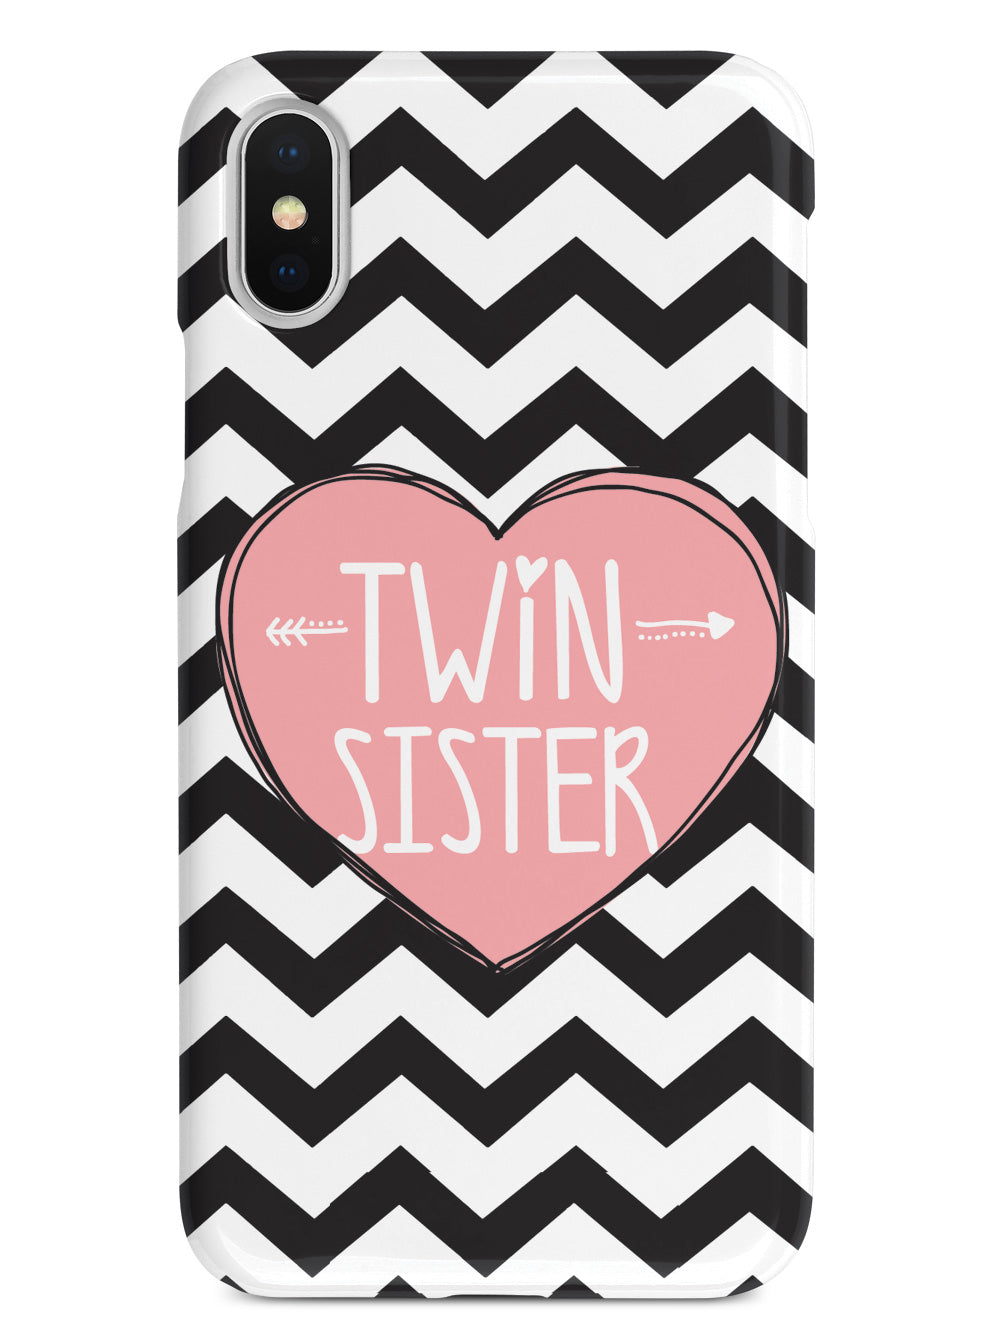 Sisterly Love - Twin Sister - Chevron Case